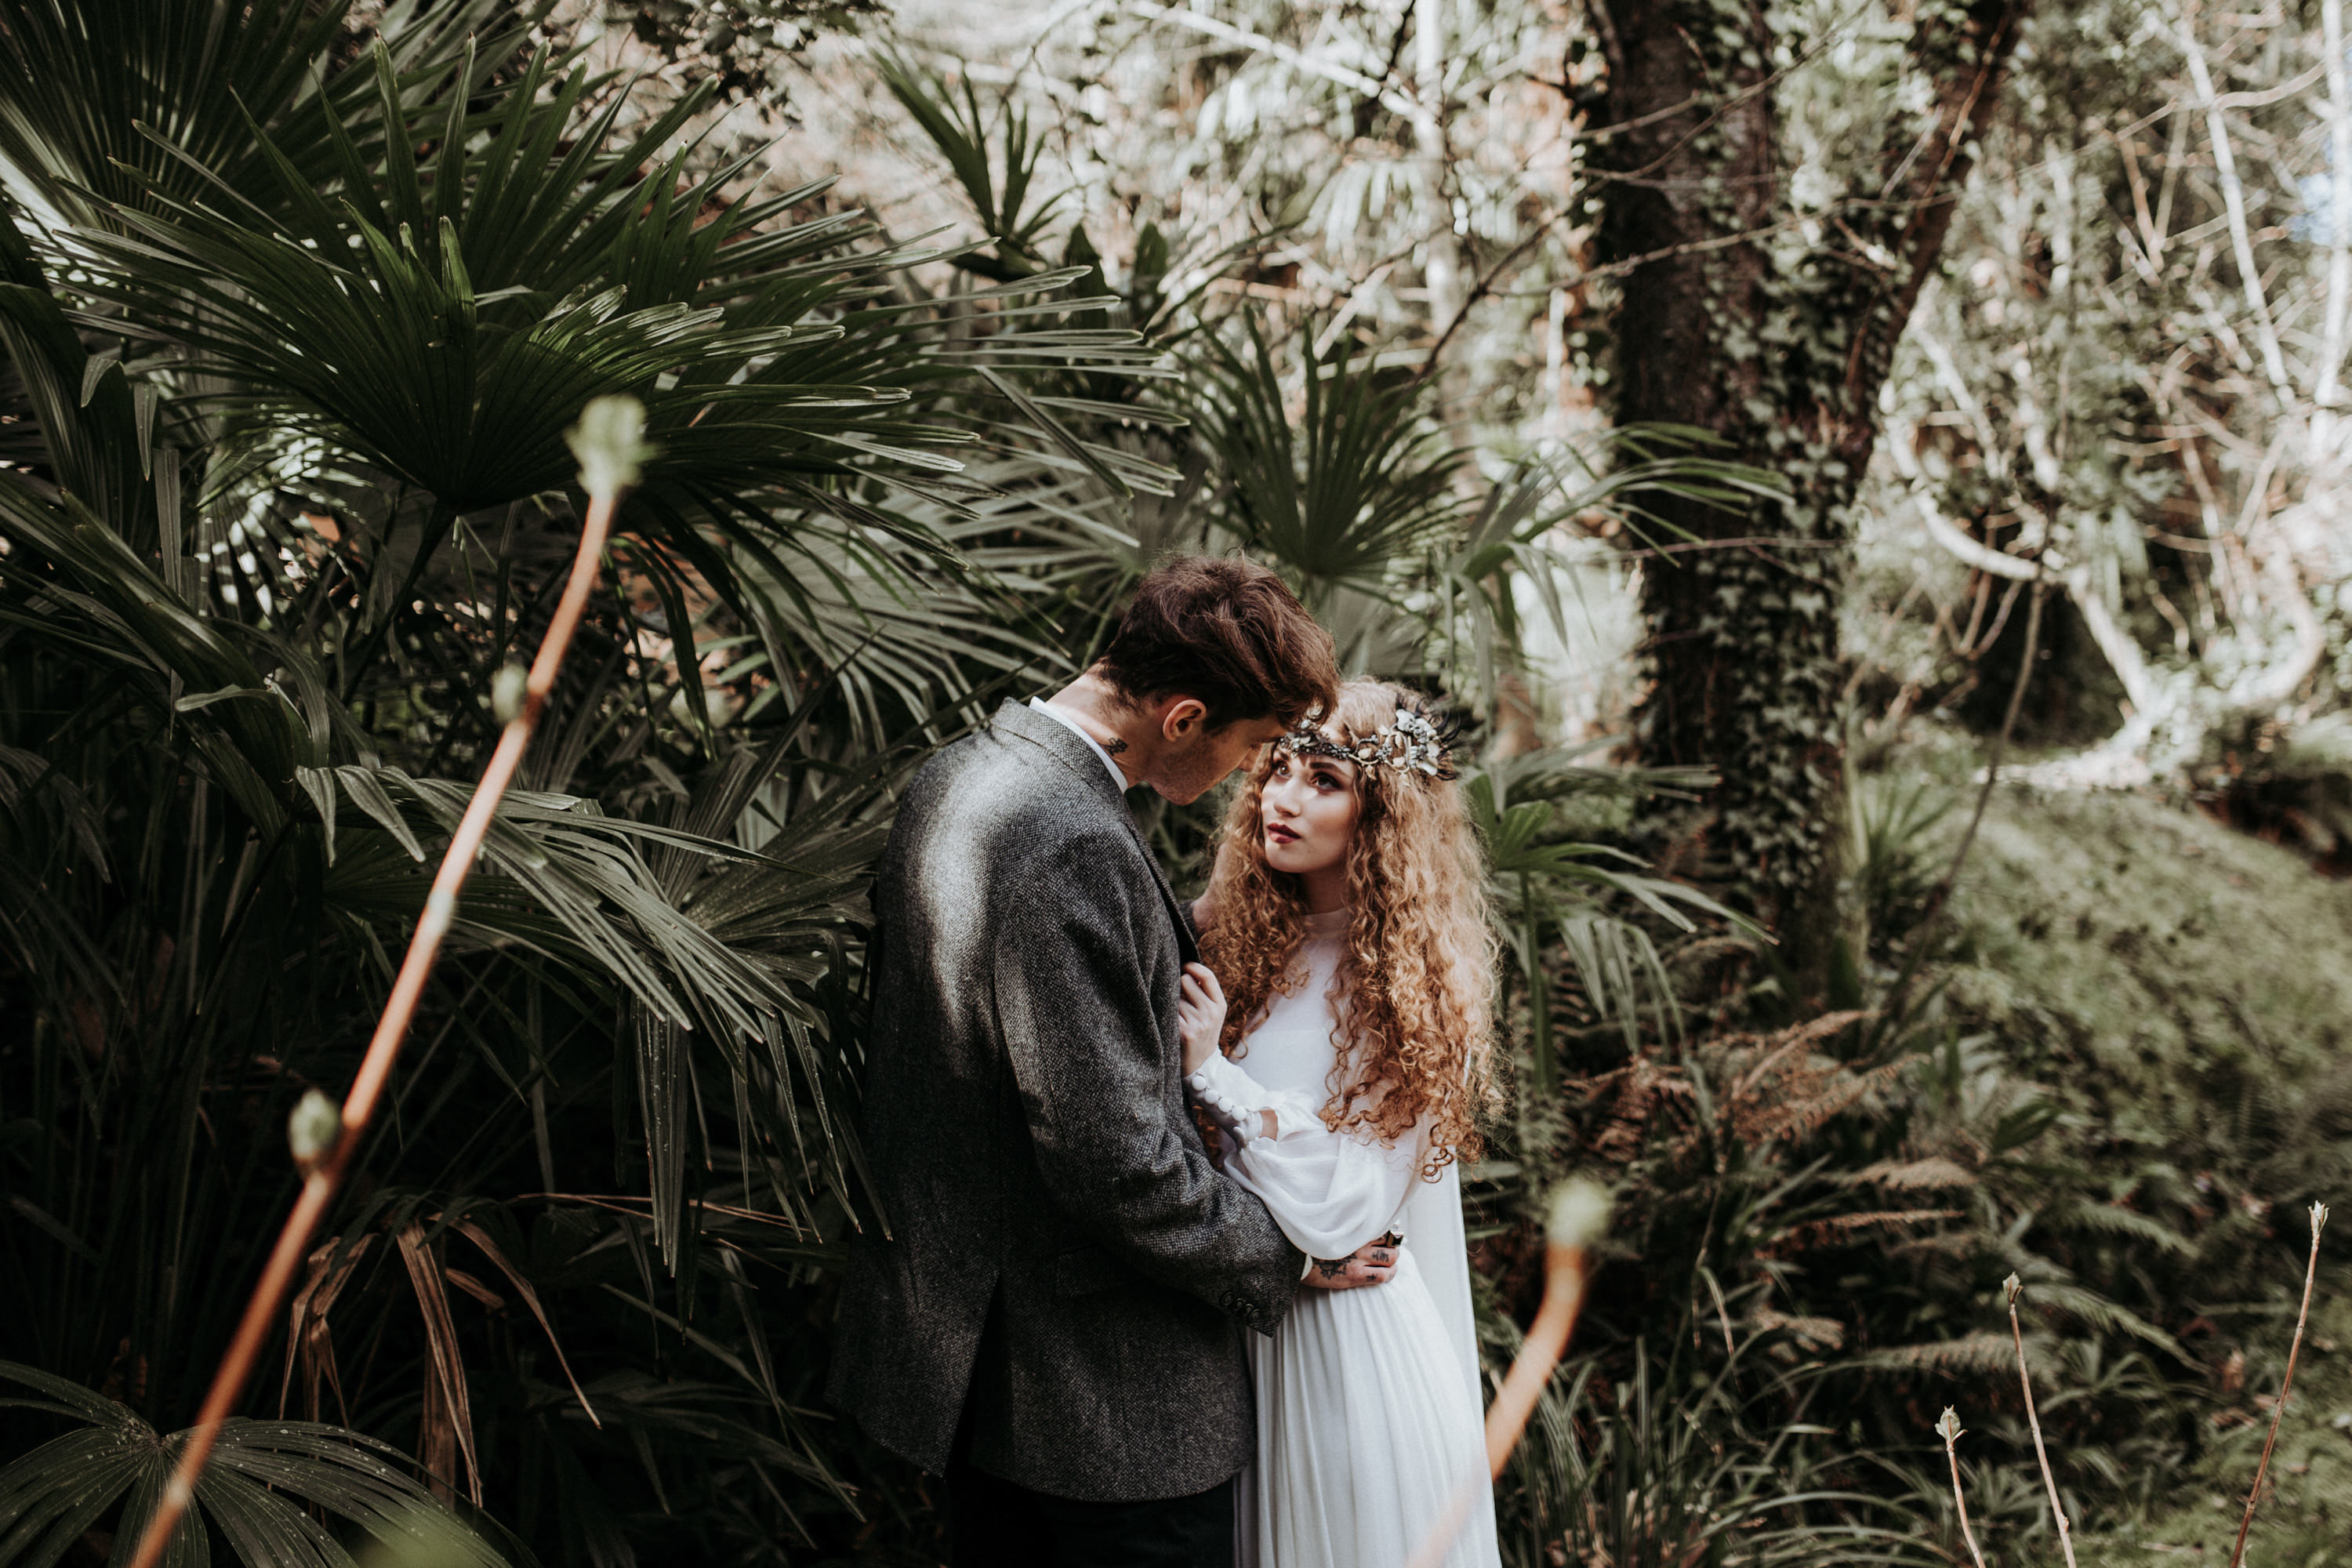 Wedding_Photographer_Barcelona_Mallorca_Daniela-Marquardt_Photography_CanaryIslands_Lanzarote_Iceland_Tuskany_Santorini_Portugal_Schweiz_Austria_Bayern_Elopement_Hochzeitsfotograf36